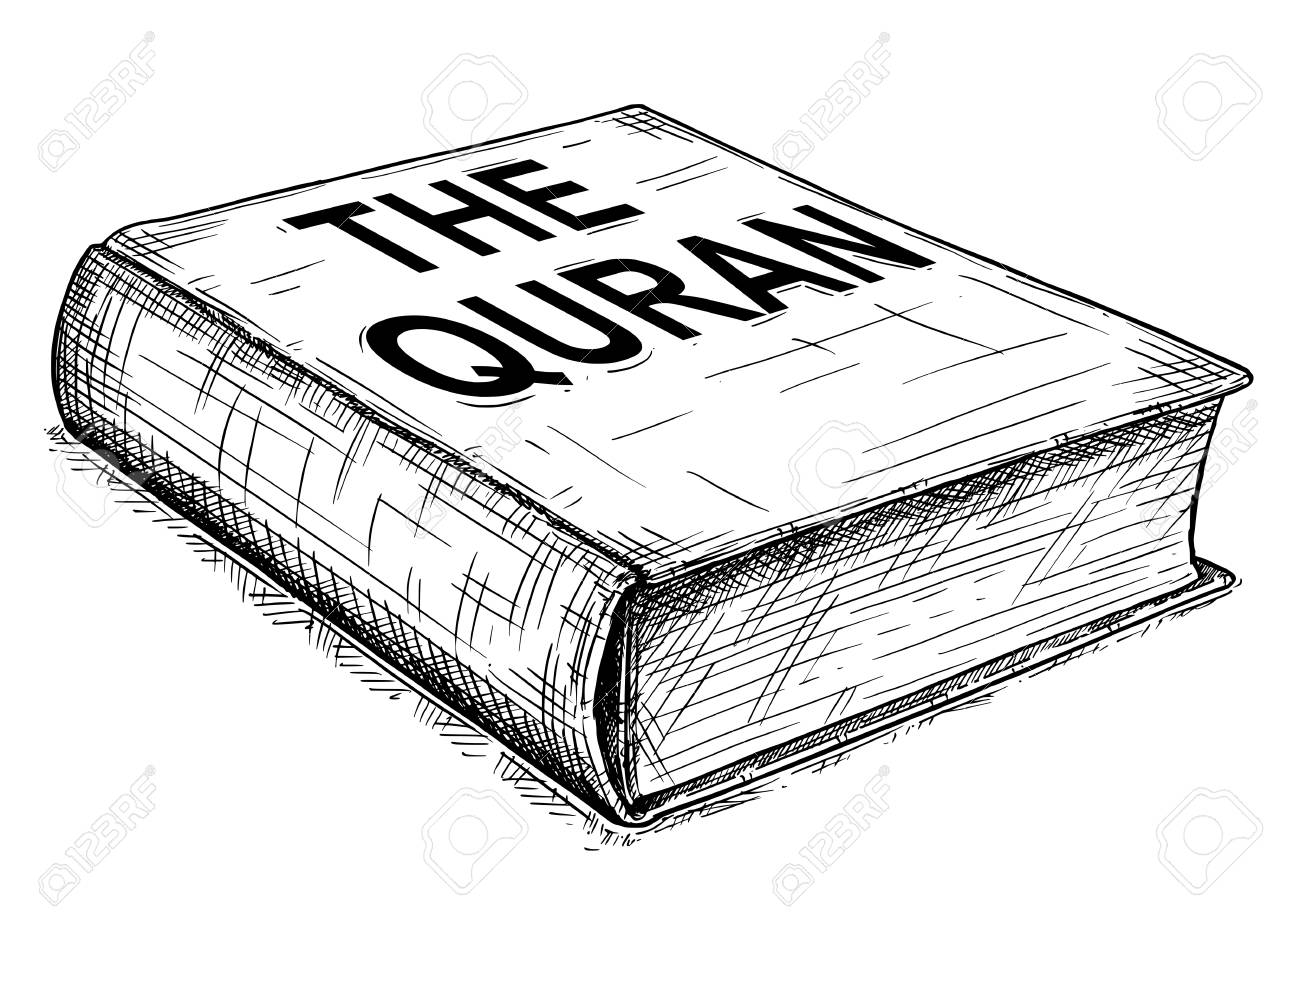 104893618-vector-artistic-pen-and-ink-drawing-illustration-of-the-quran-or-koran-book-of-islam-.jpg